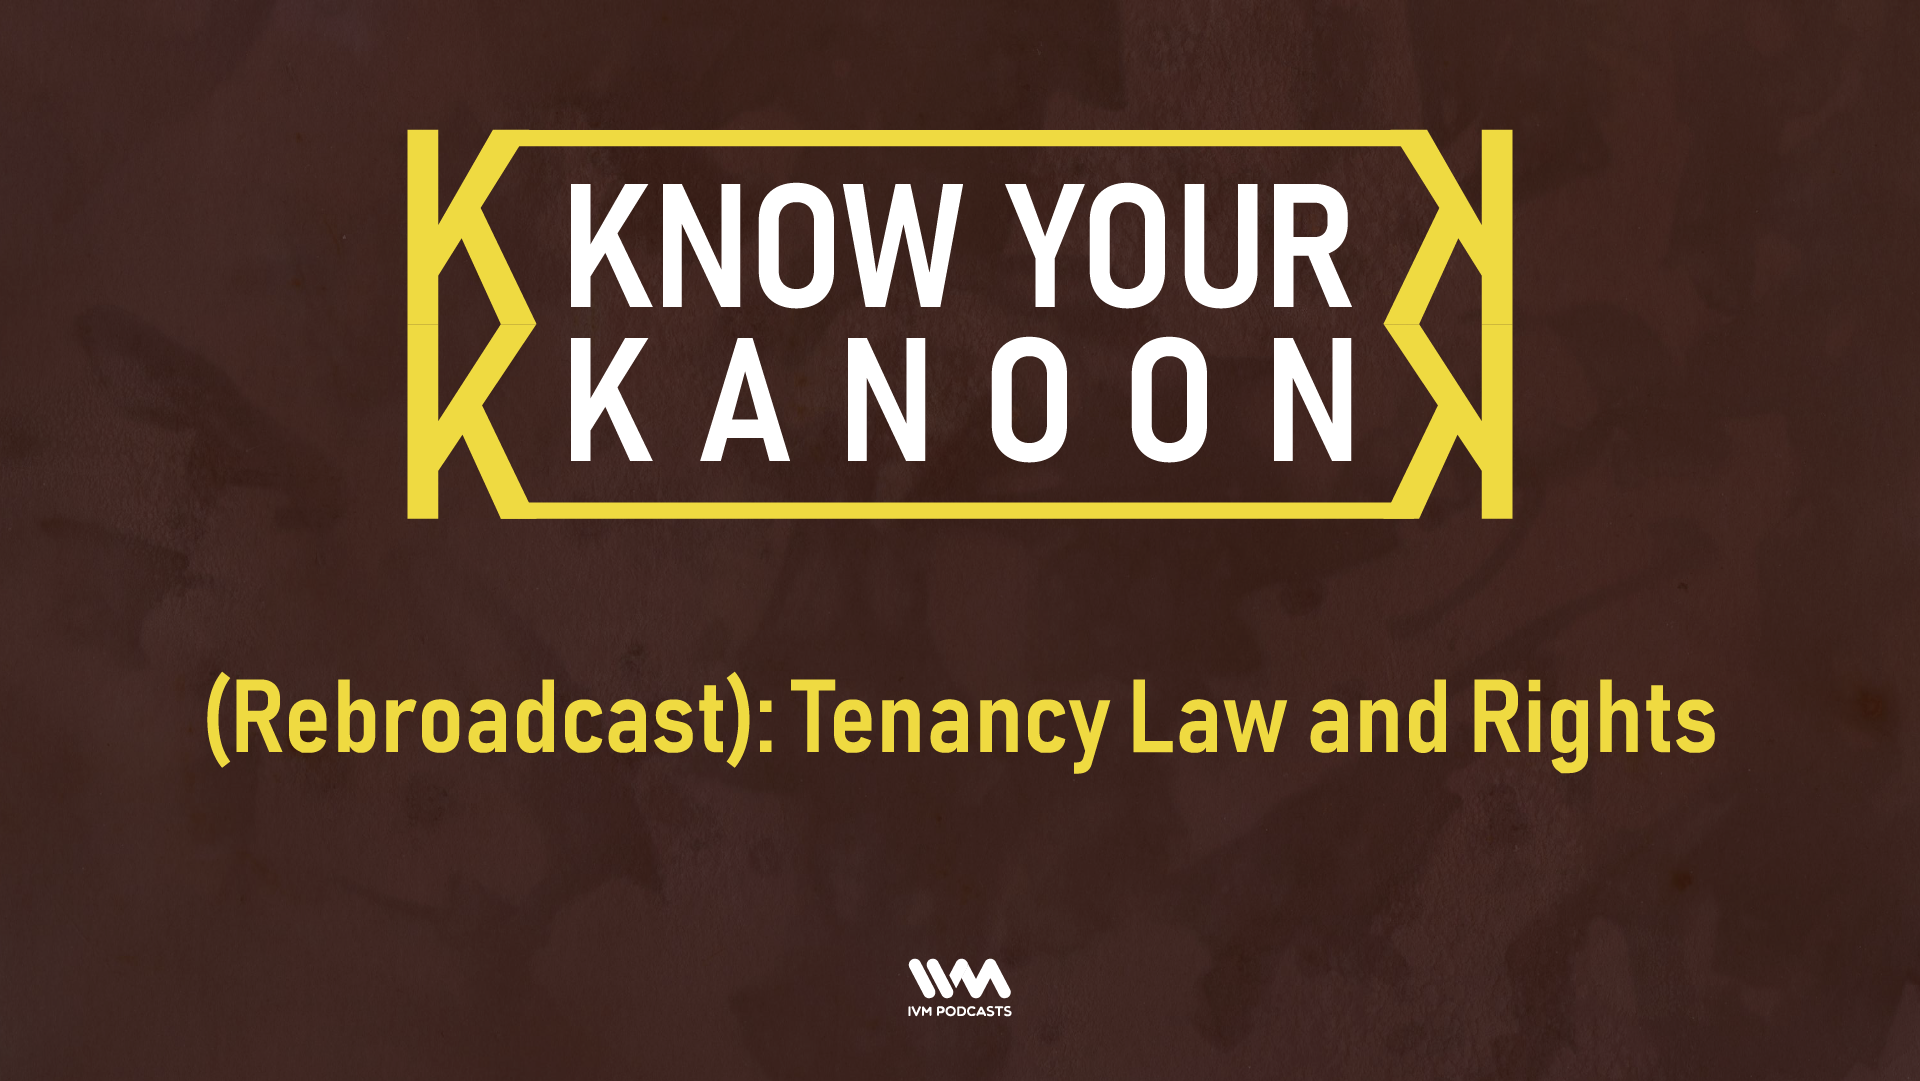 KnowYourKanoonEpisode04RB.png